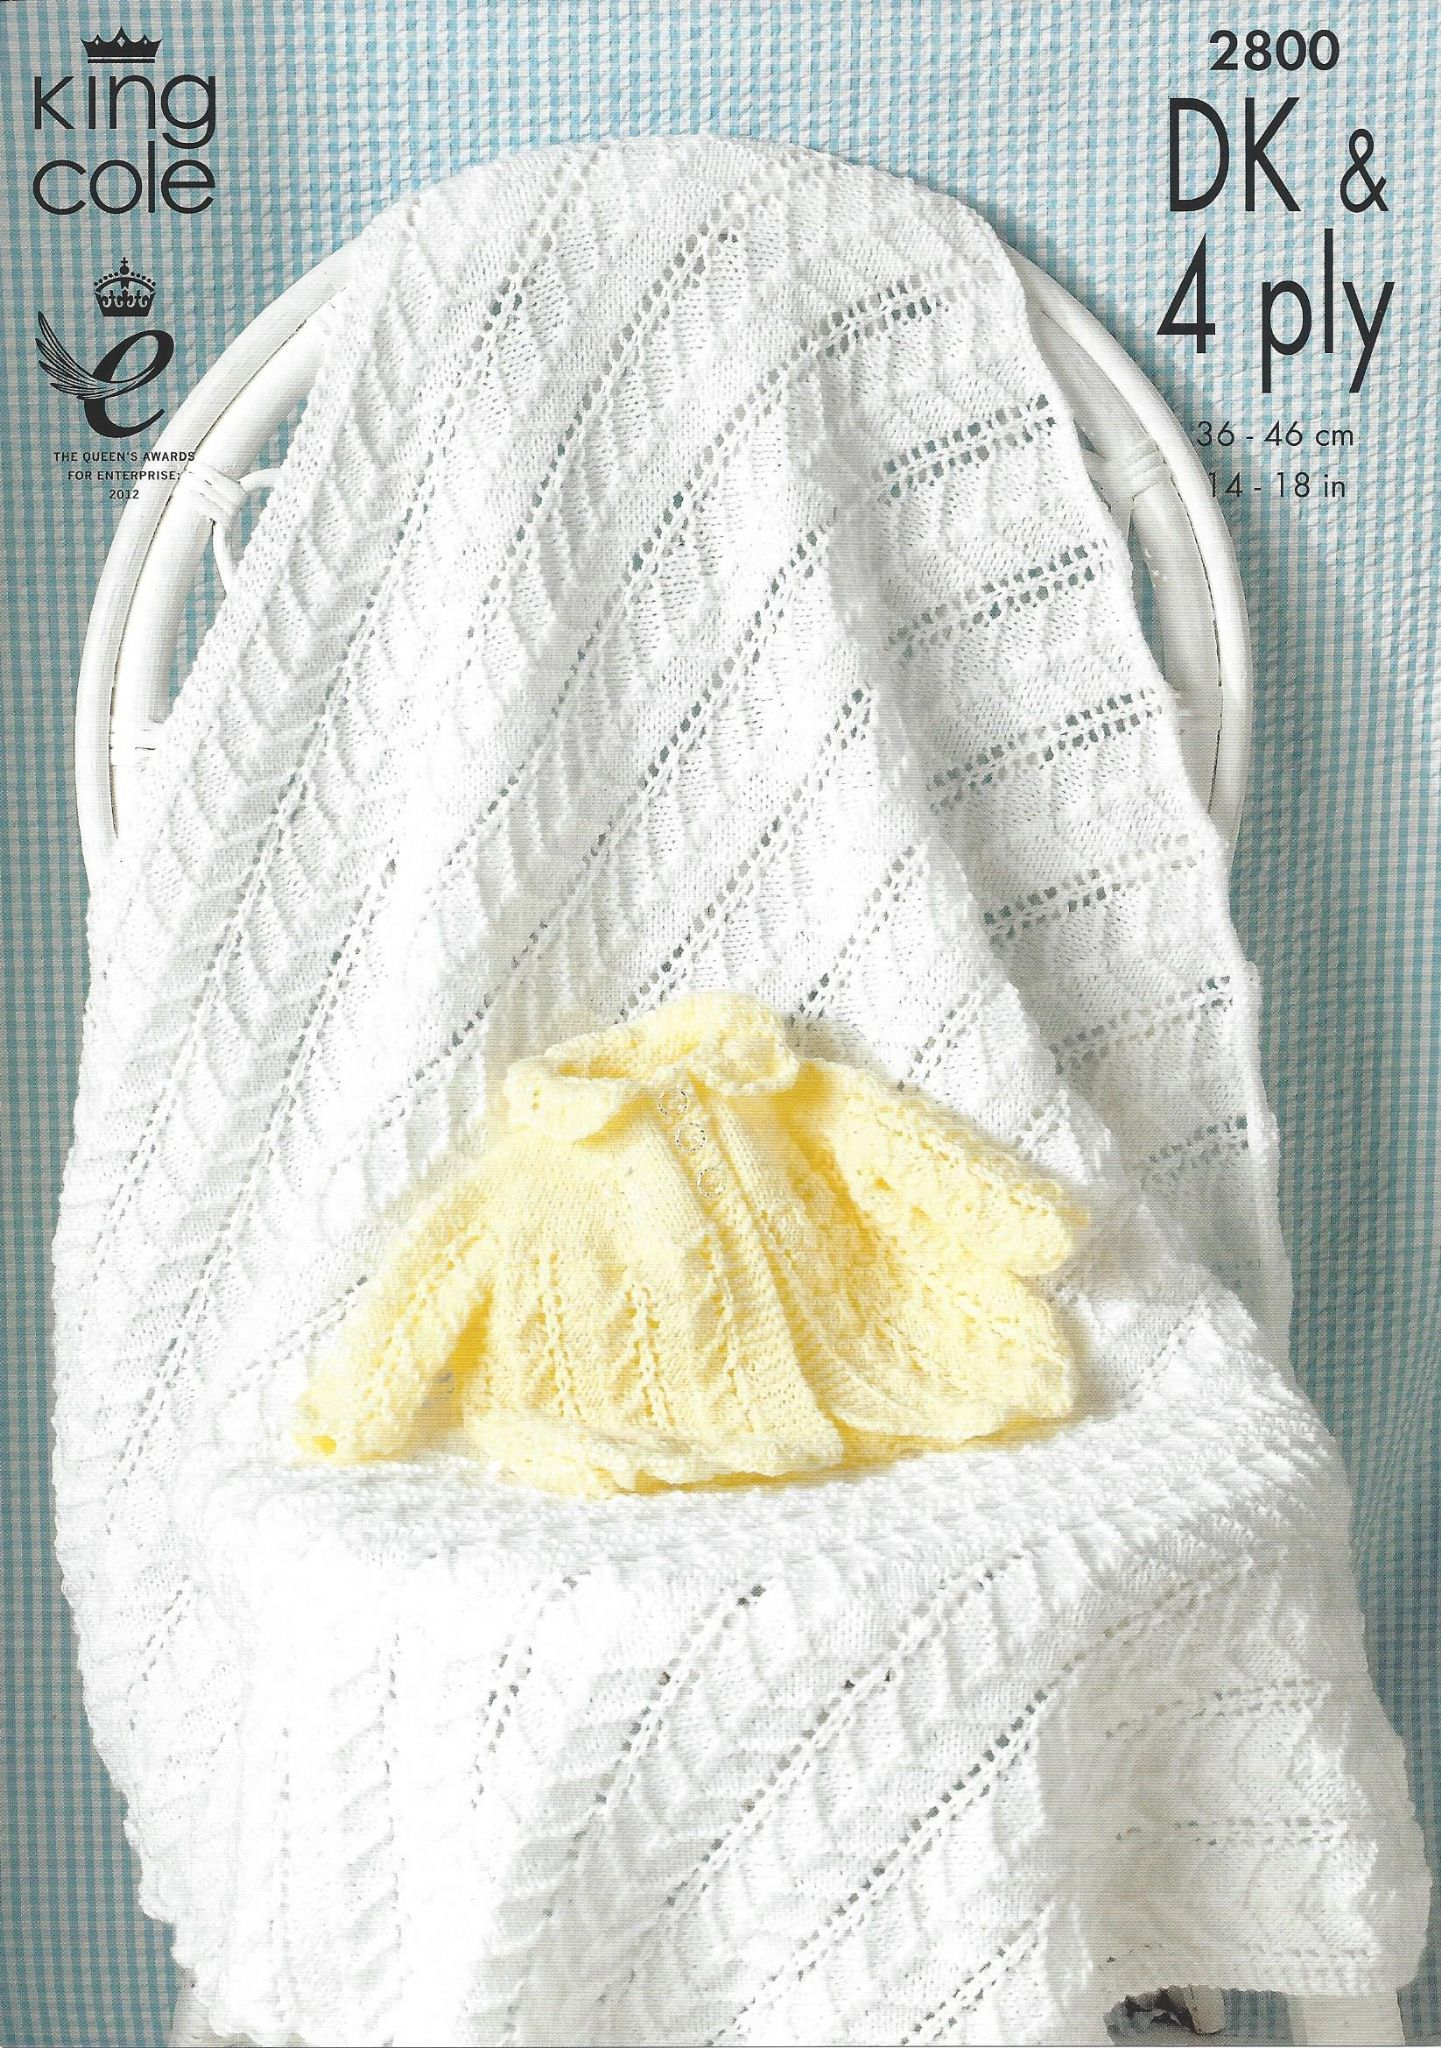 King Cole Baby DK & 4ply Knitting Pattern - 2800 Matinee Coat and Shawl